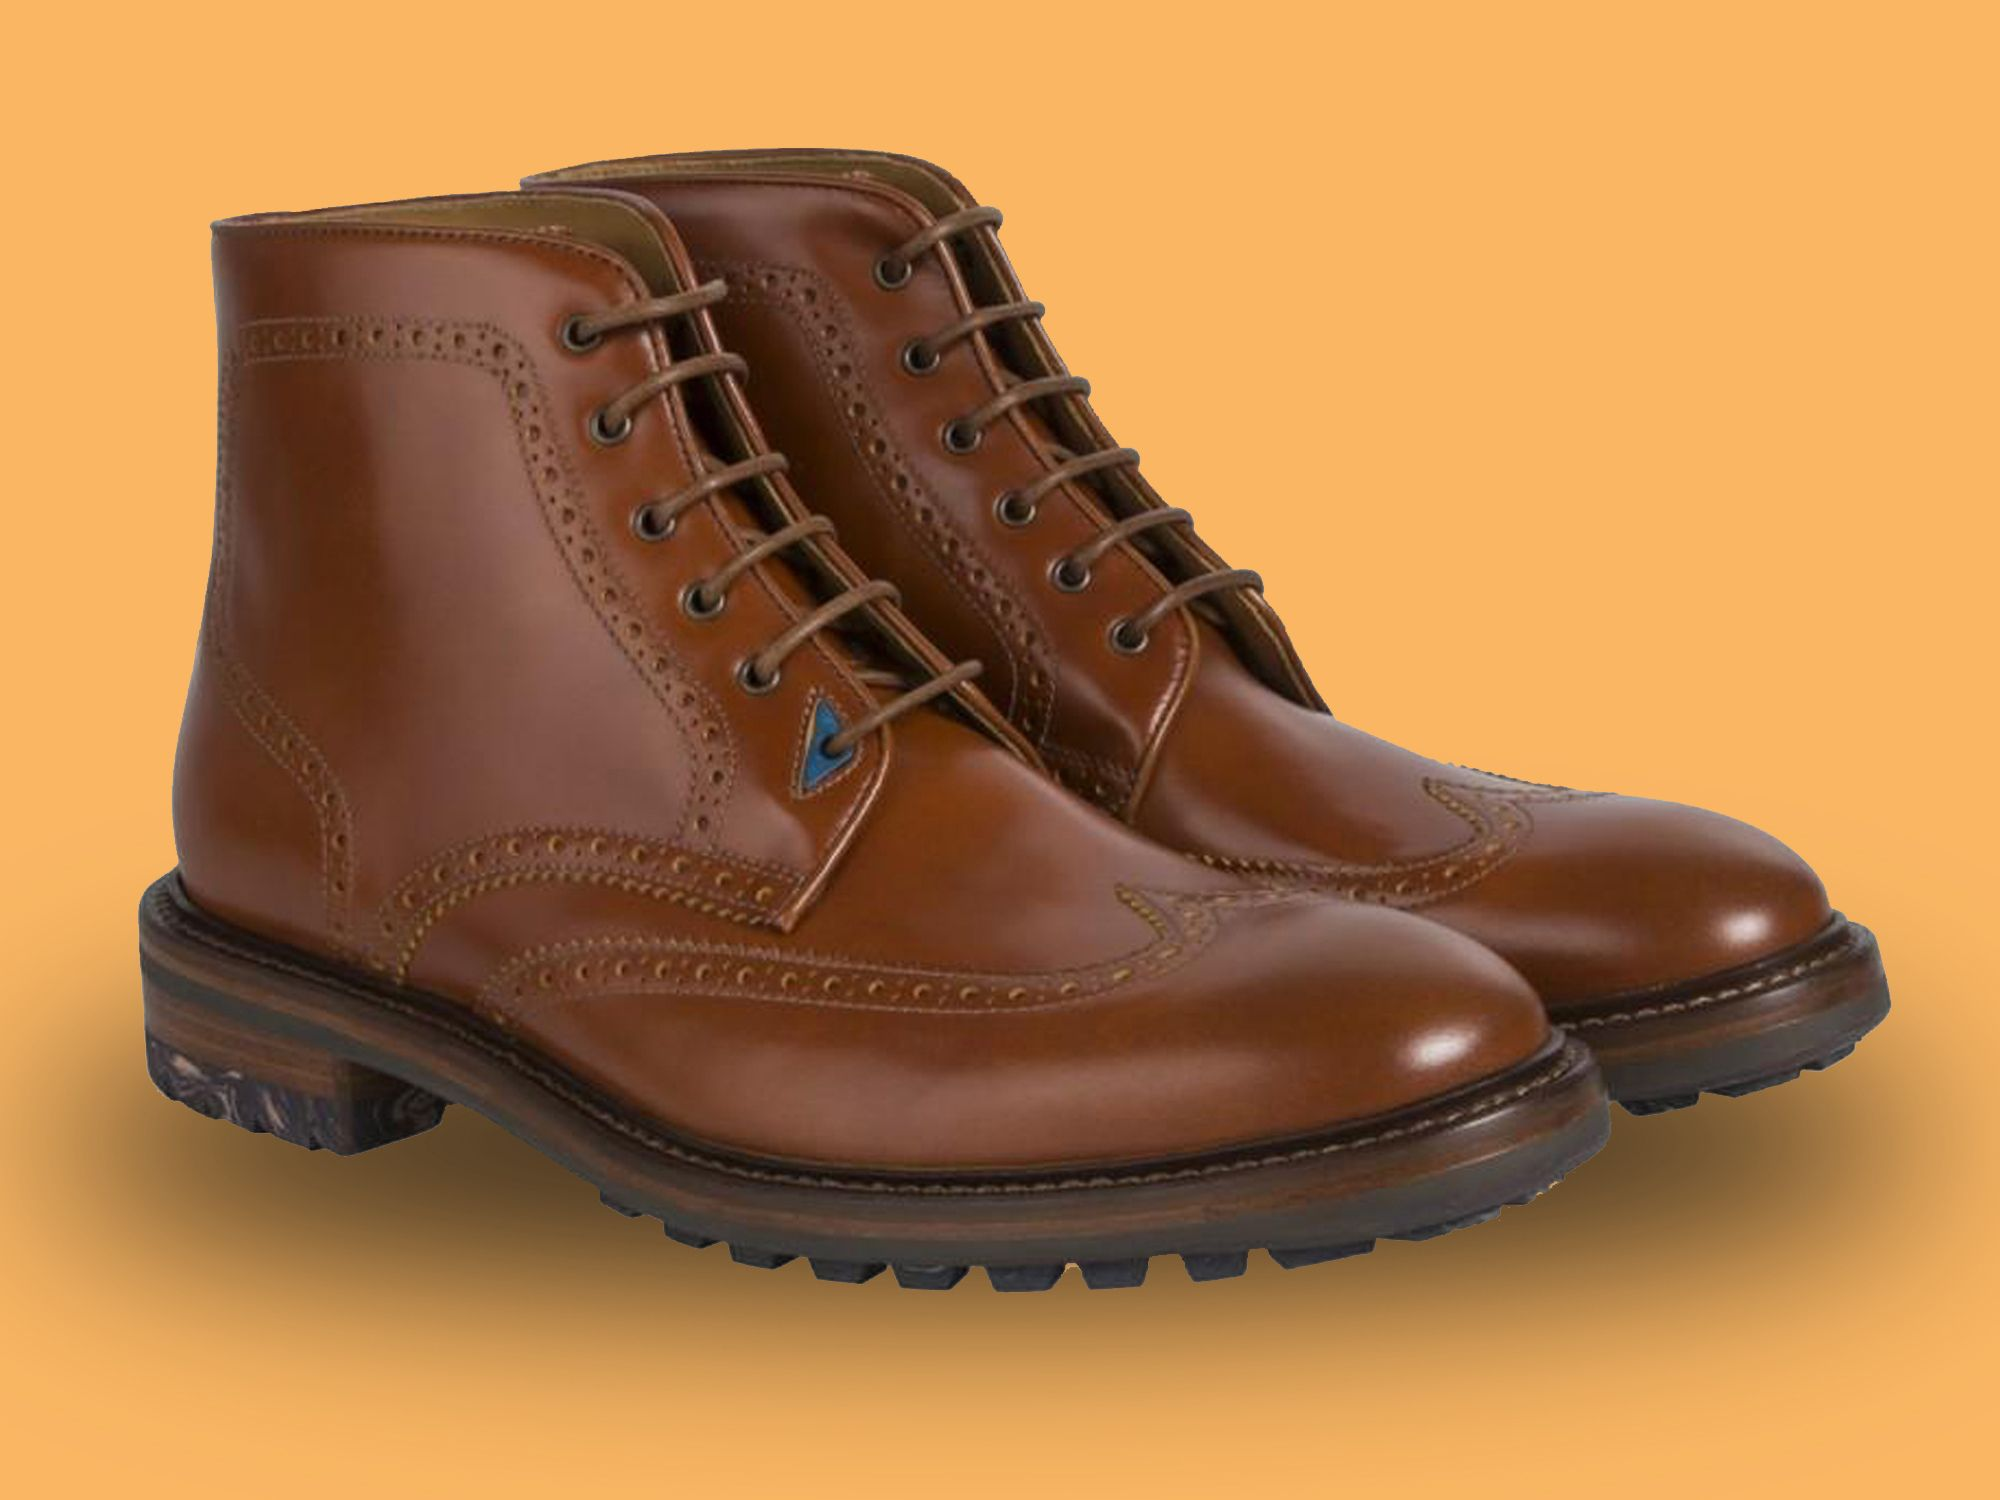 f54d6ddc570 The Best Boots To Wear This Winter